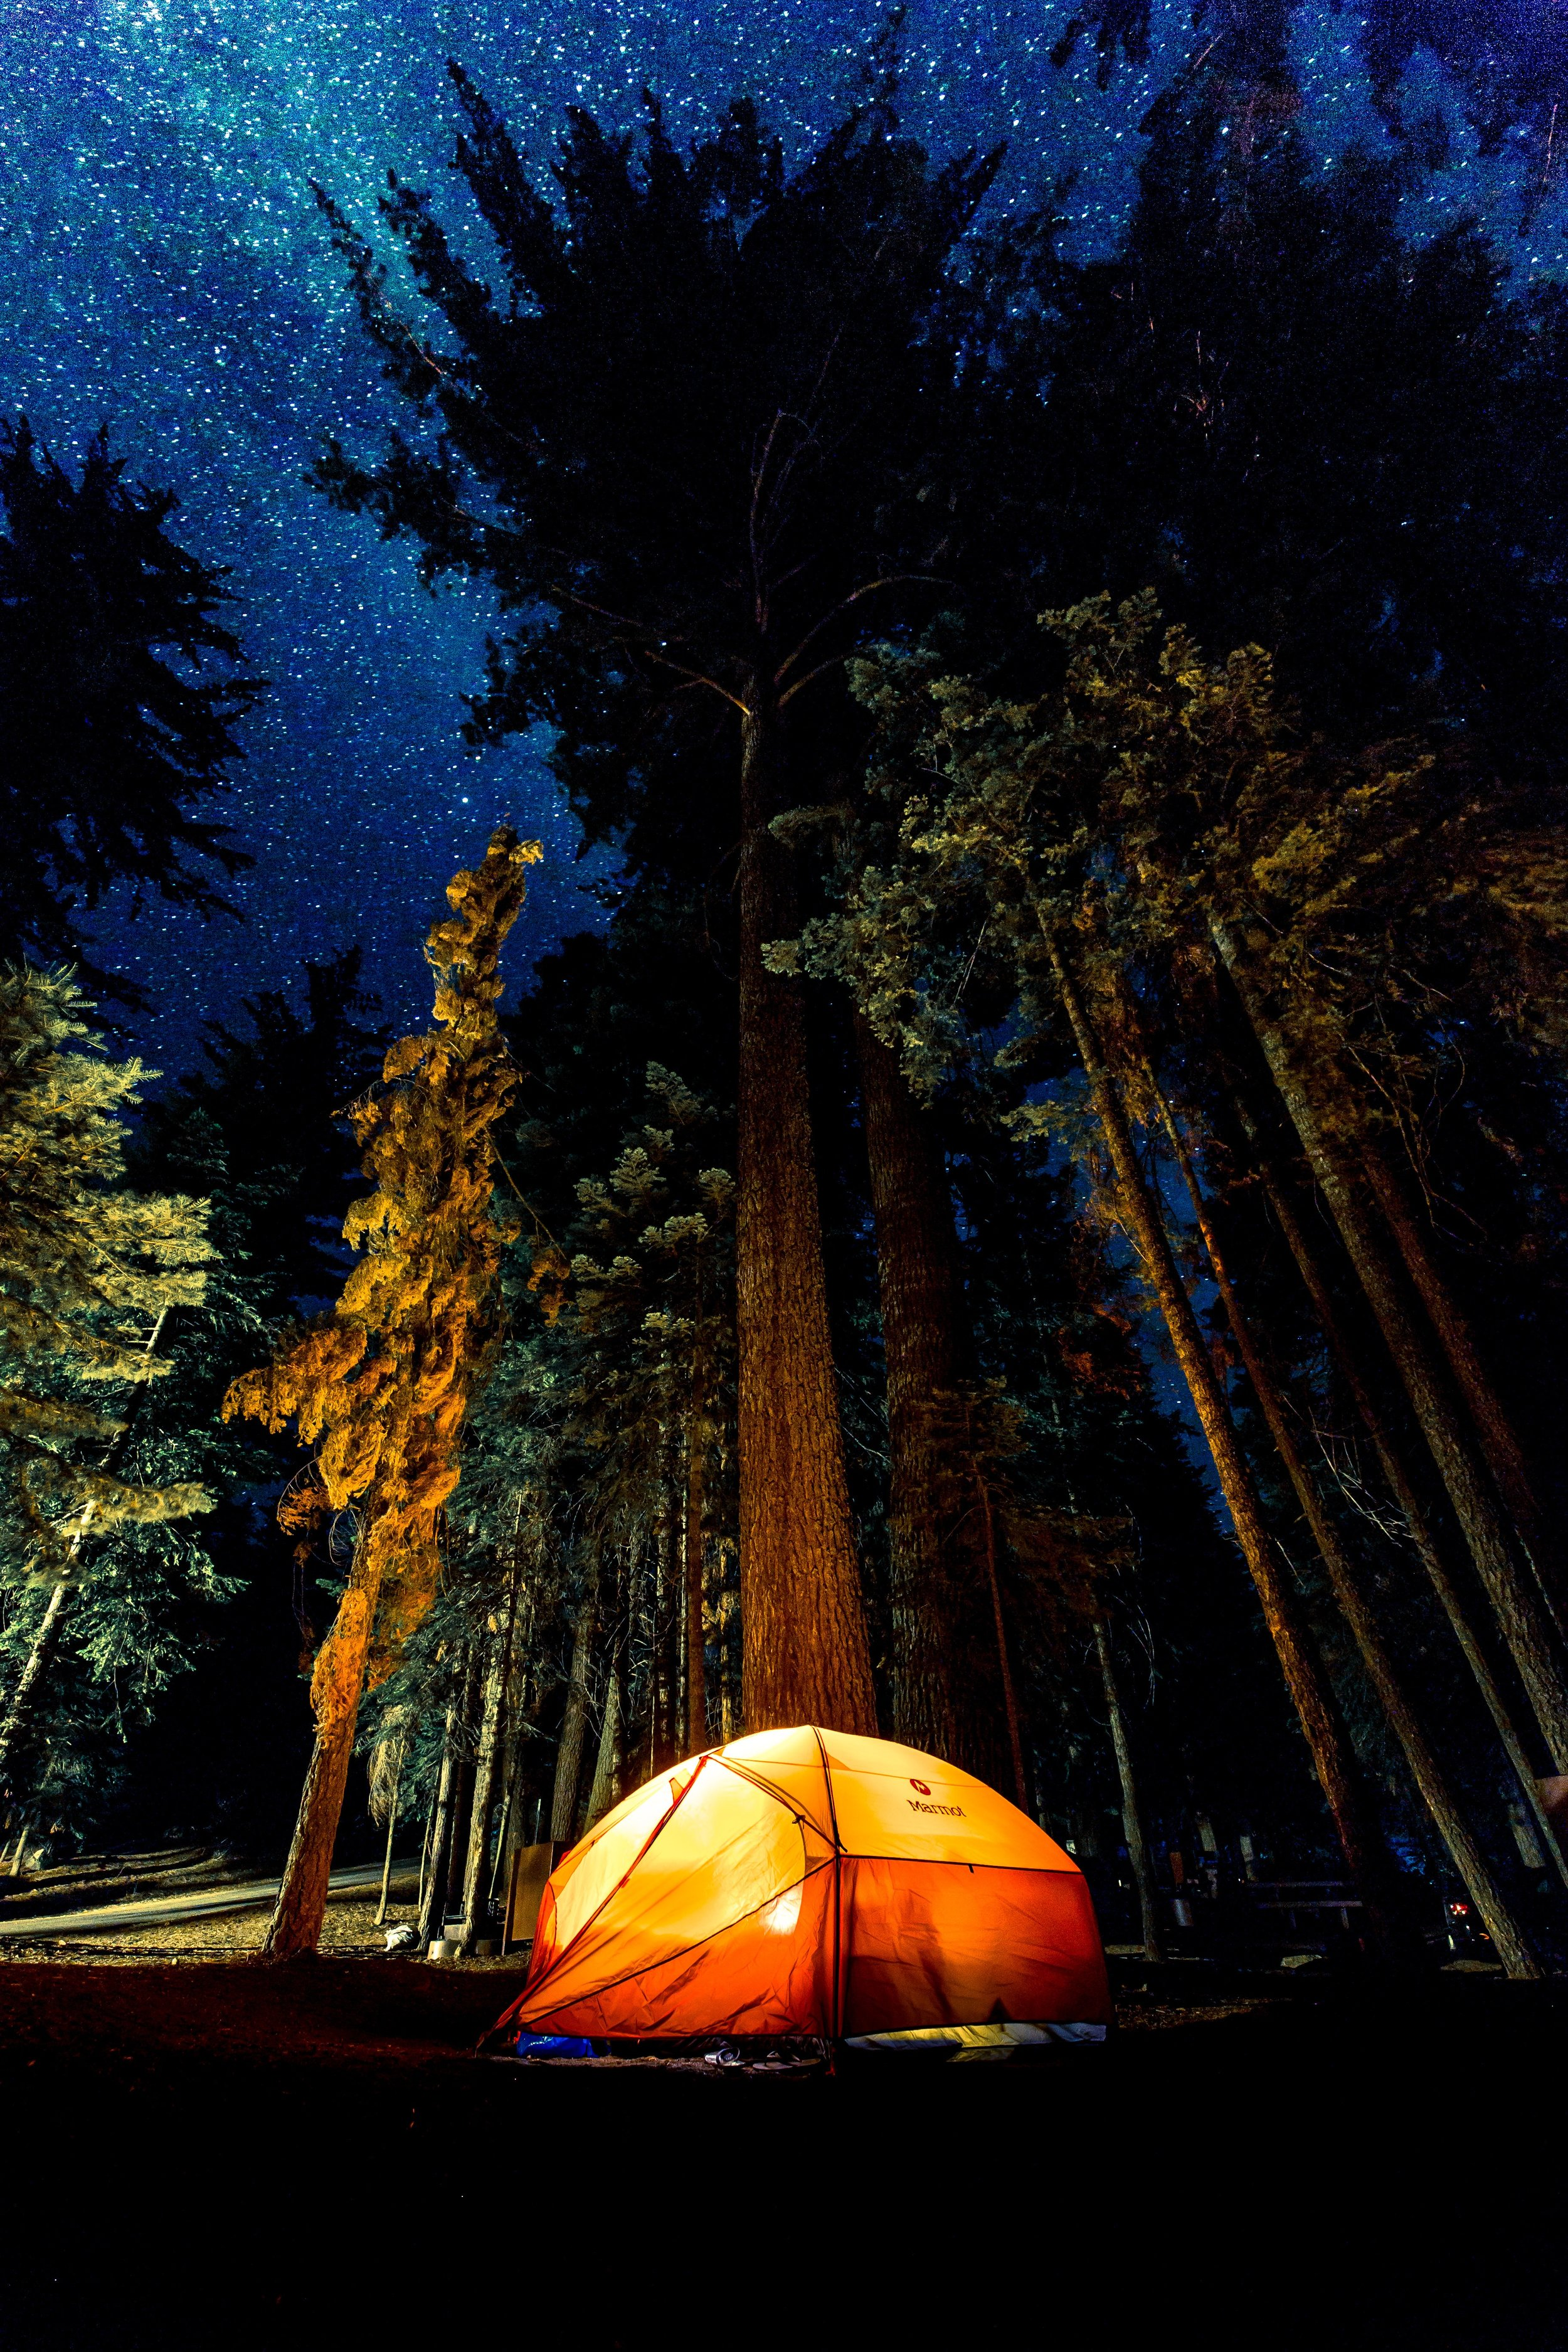 best camping lights: reviewed, tested, ranked.